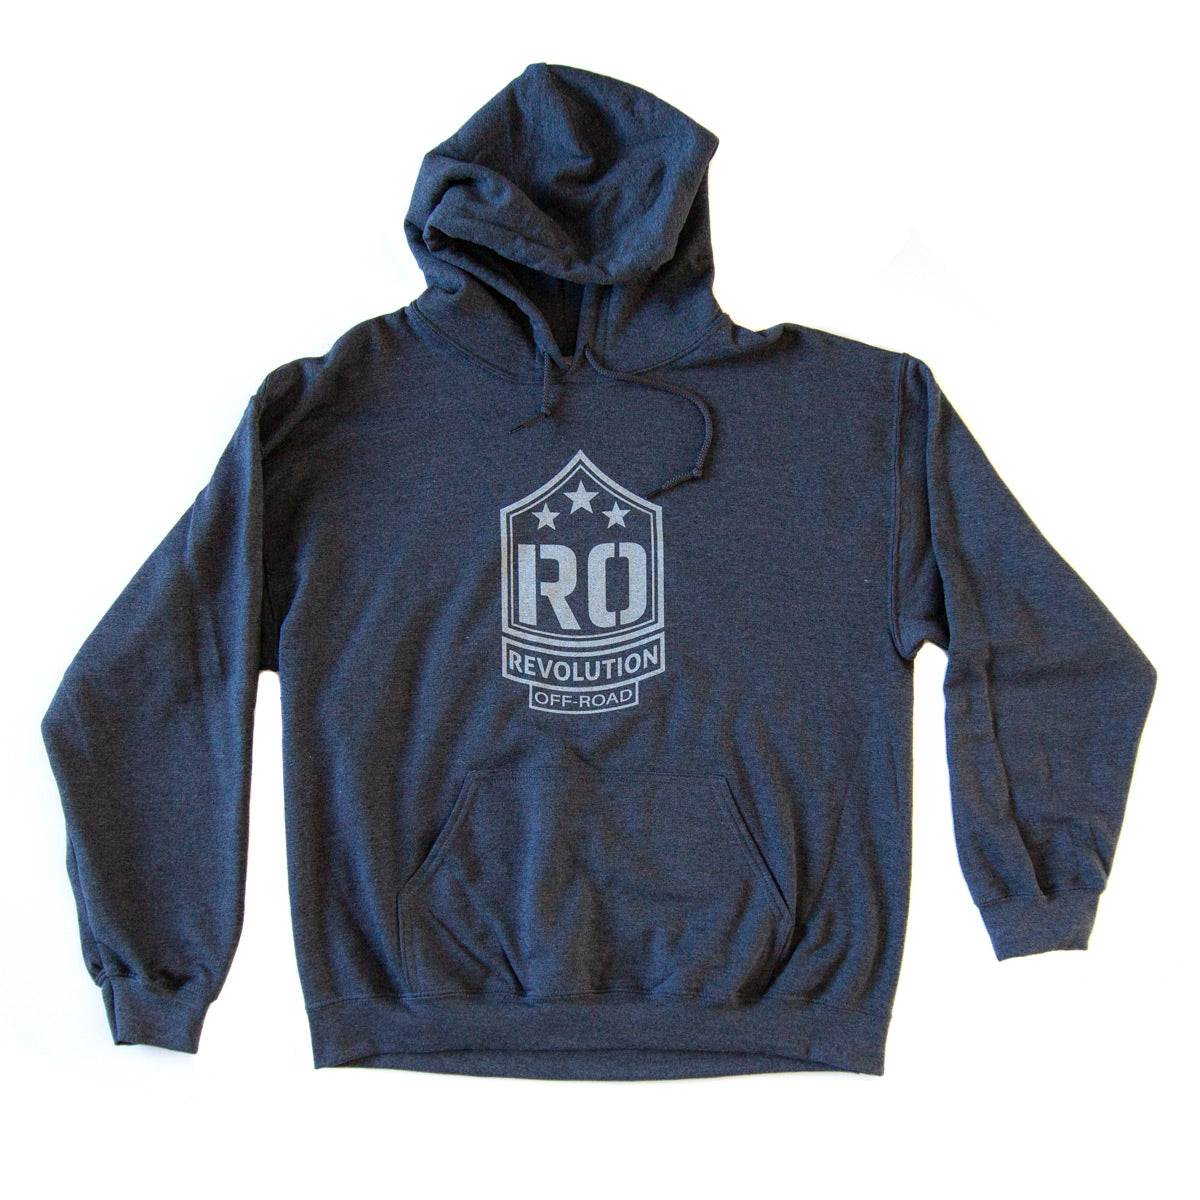 RO Logo Hoodie - Grey | Revolution Off-Road